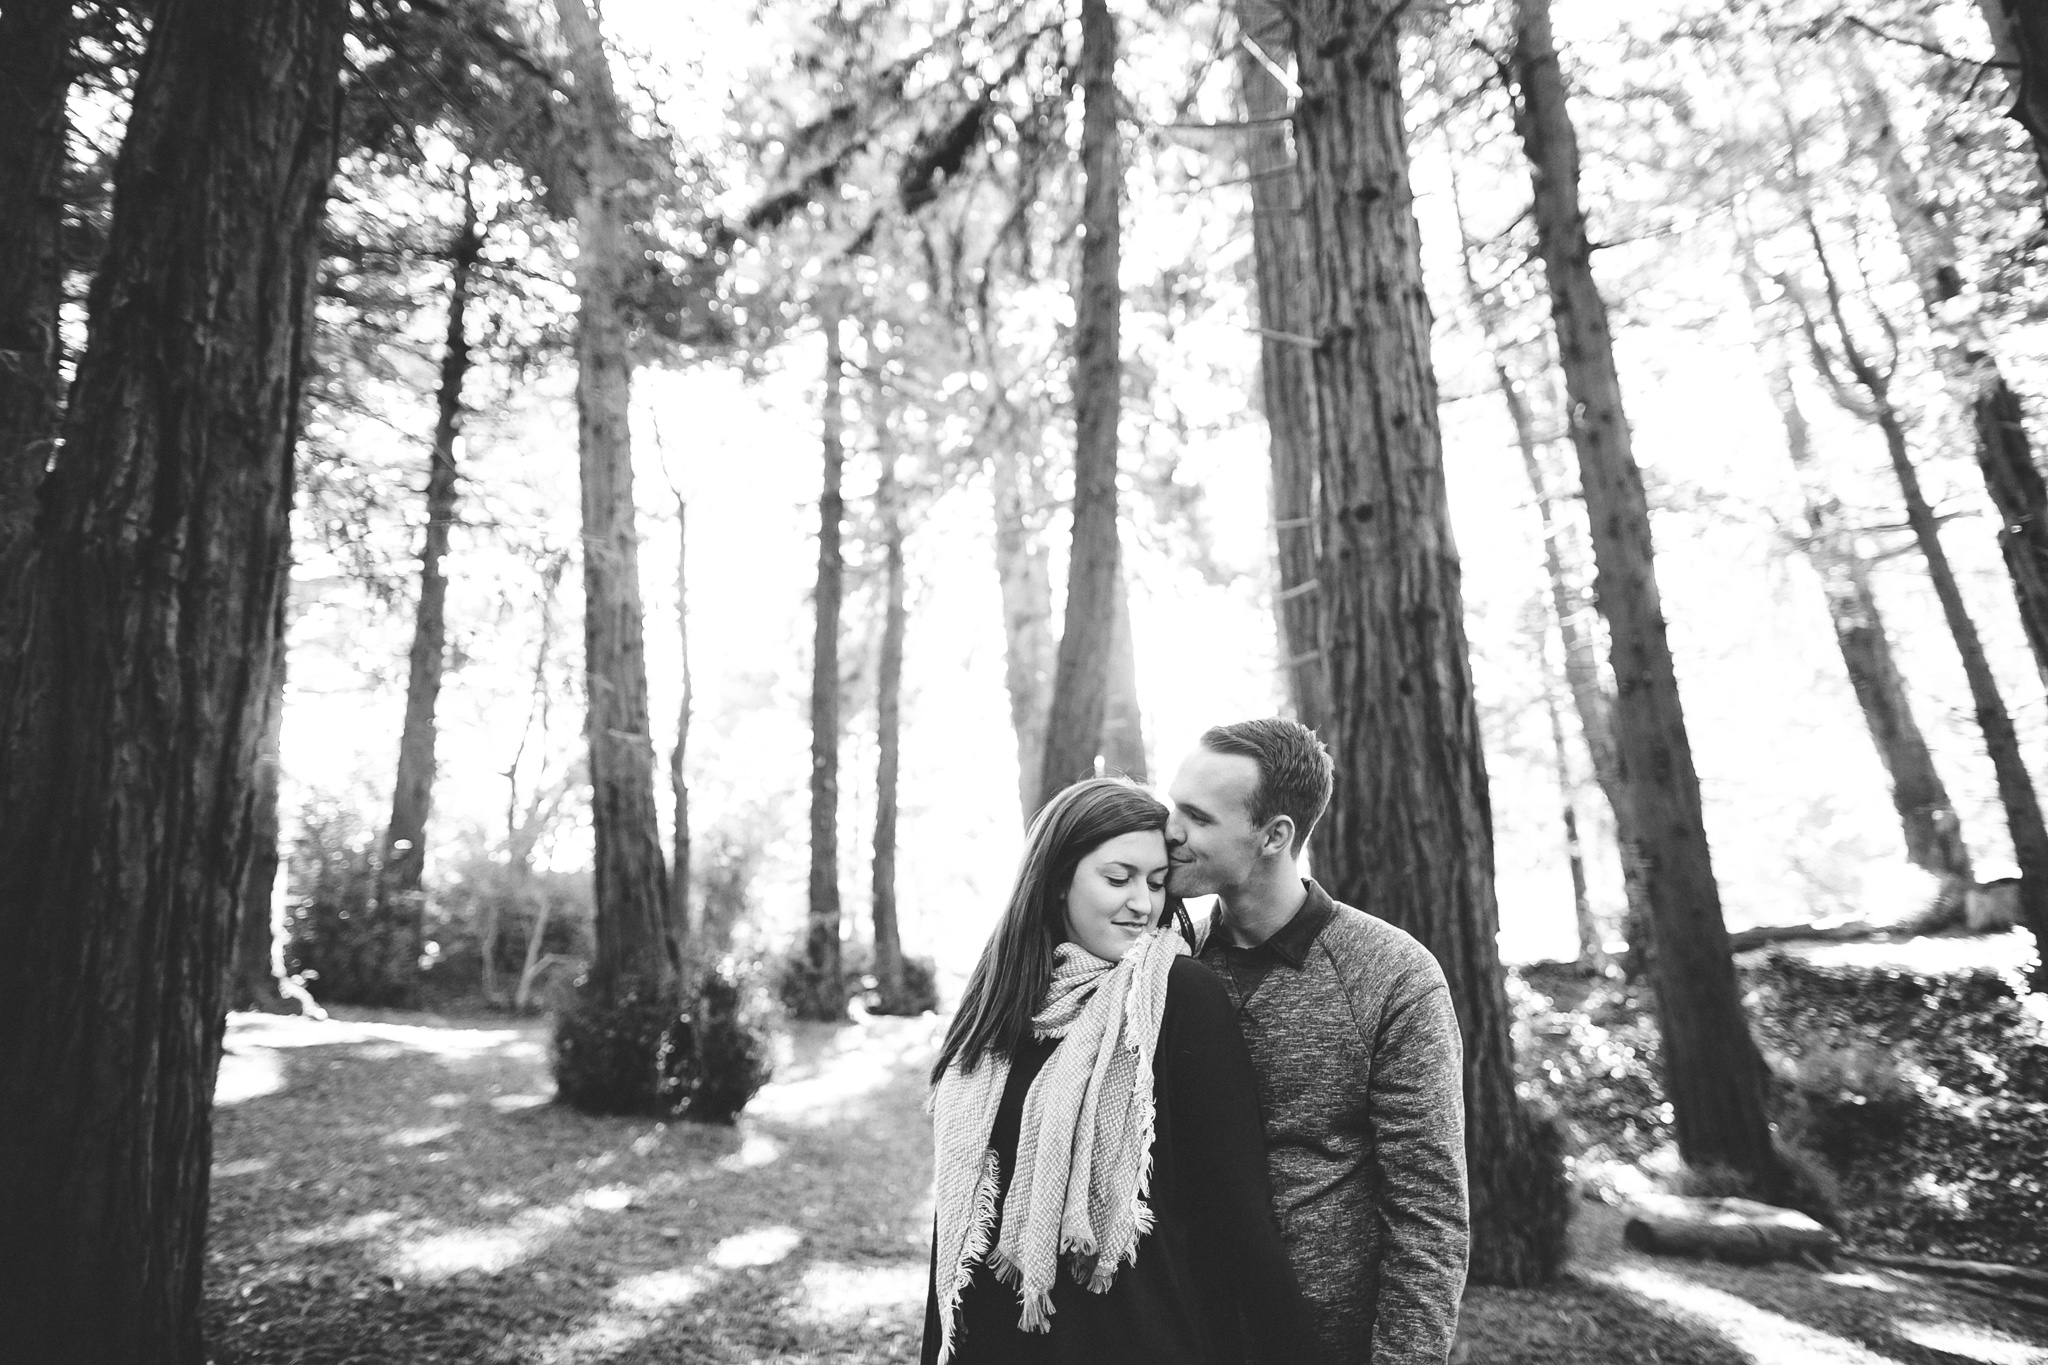 Sunee+Adam-Proposal-KellyBoitanoPhotography_WEB20151229_0055